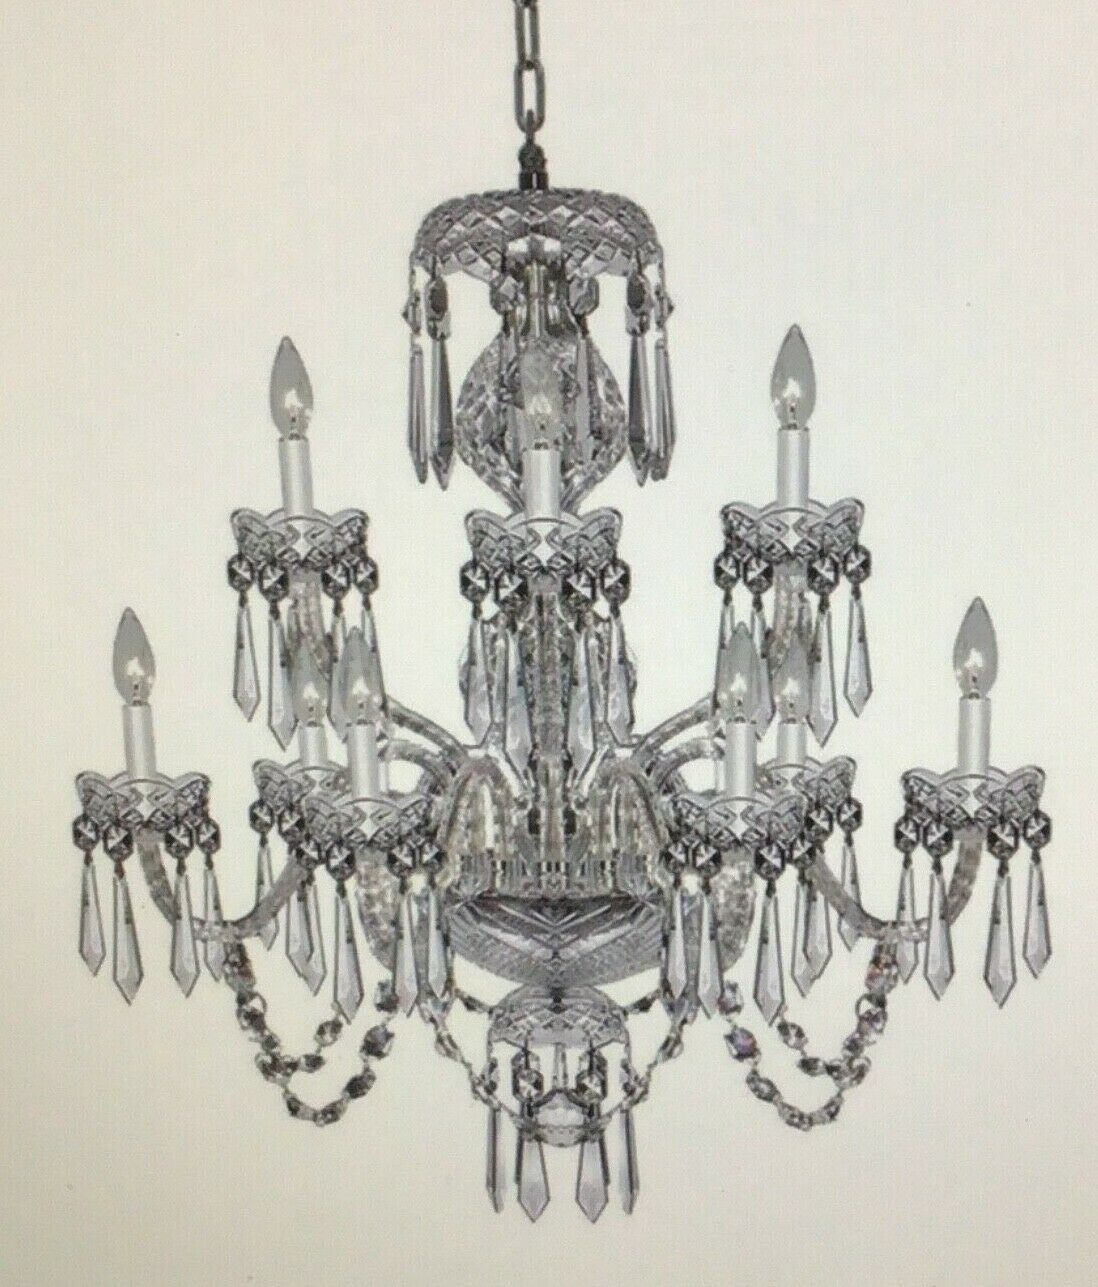 Waterford Crystal Chandelier 9 Arm Cranmore B9 Made In Ireland 1970 S For Sale Online